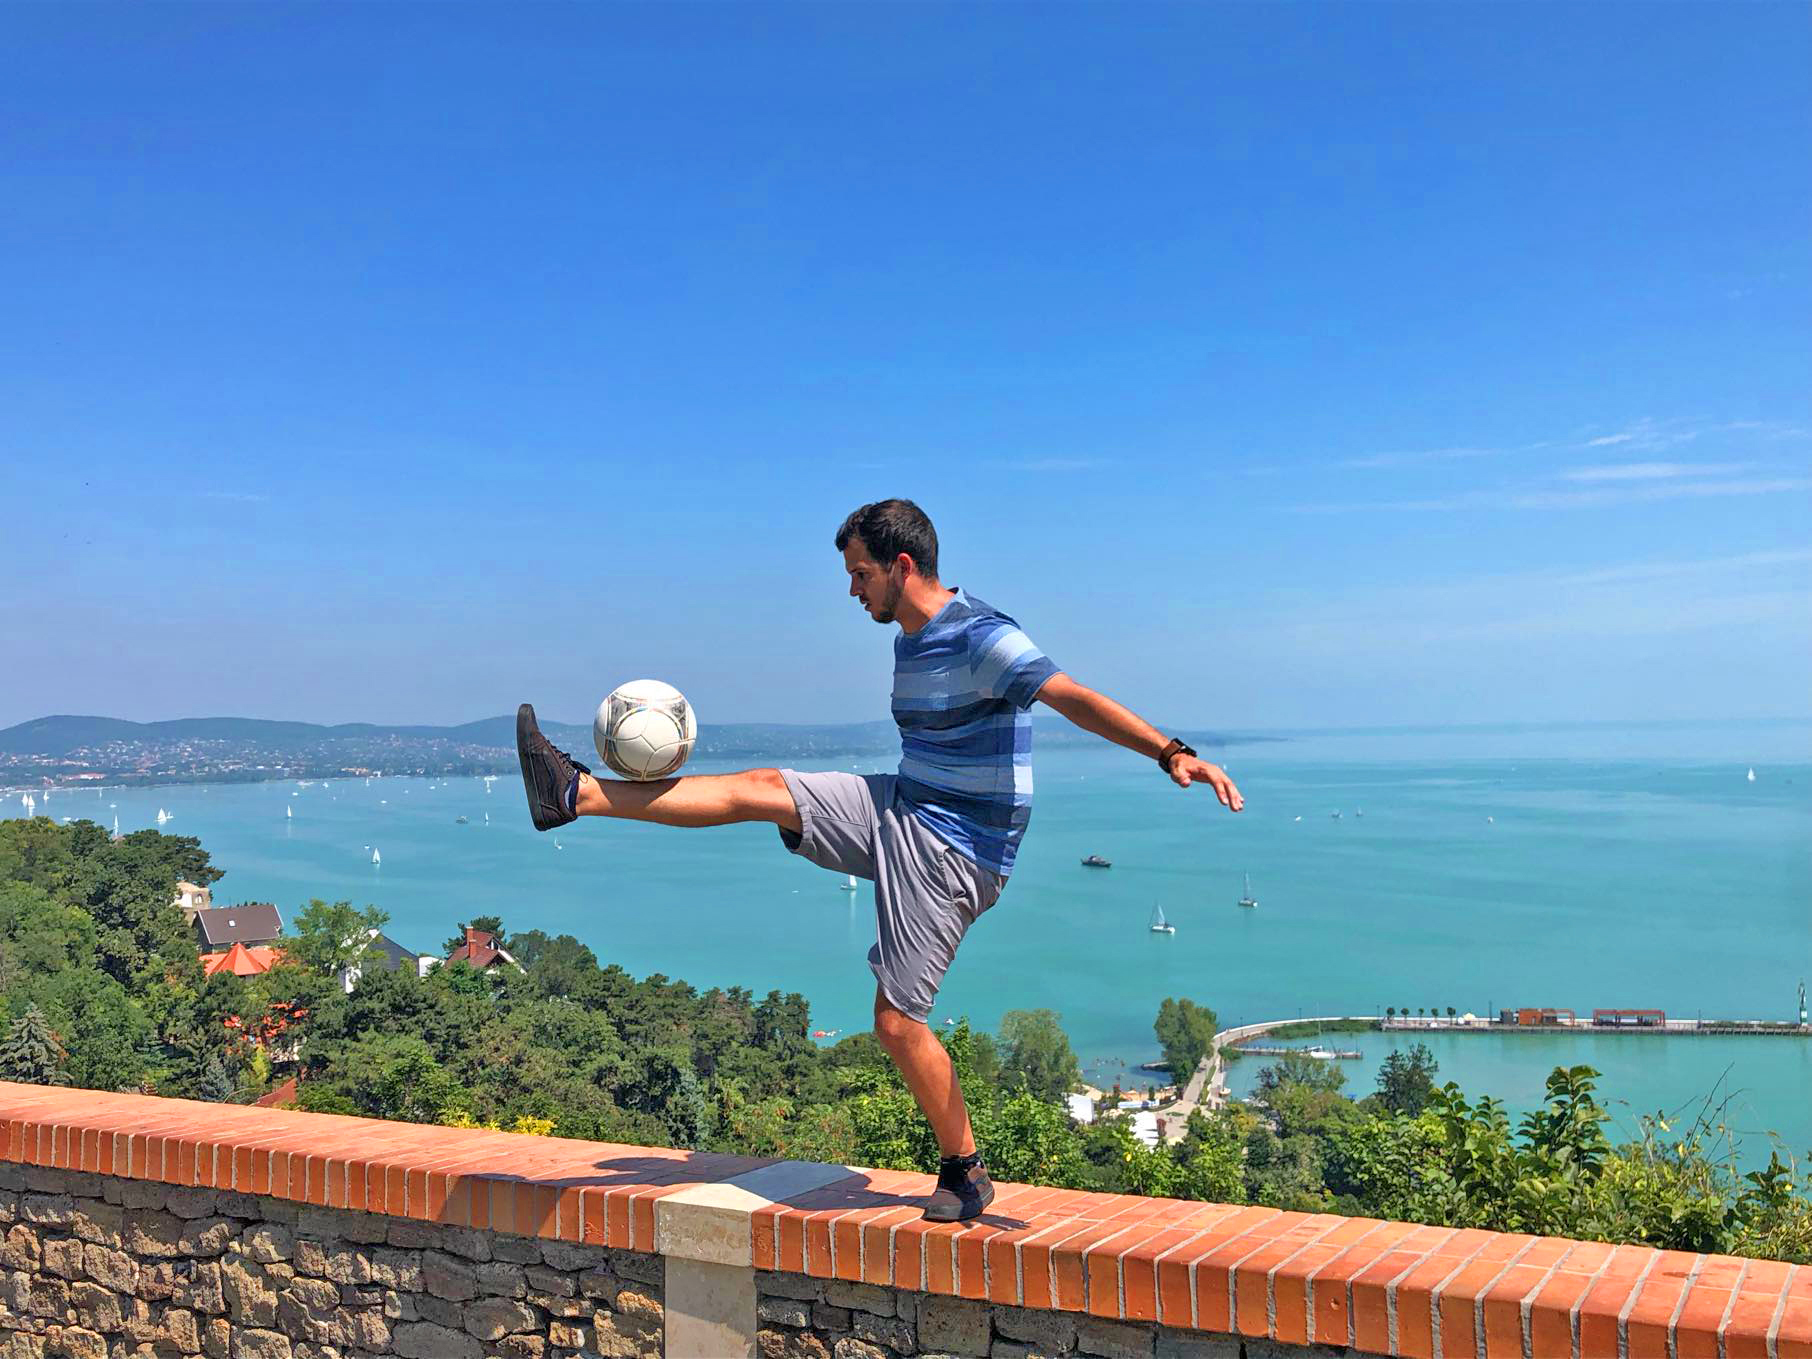 Kvartam football freestyle